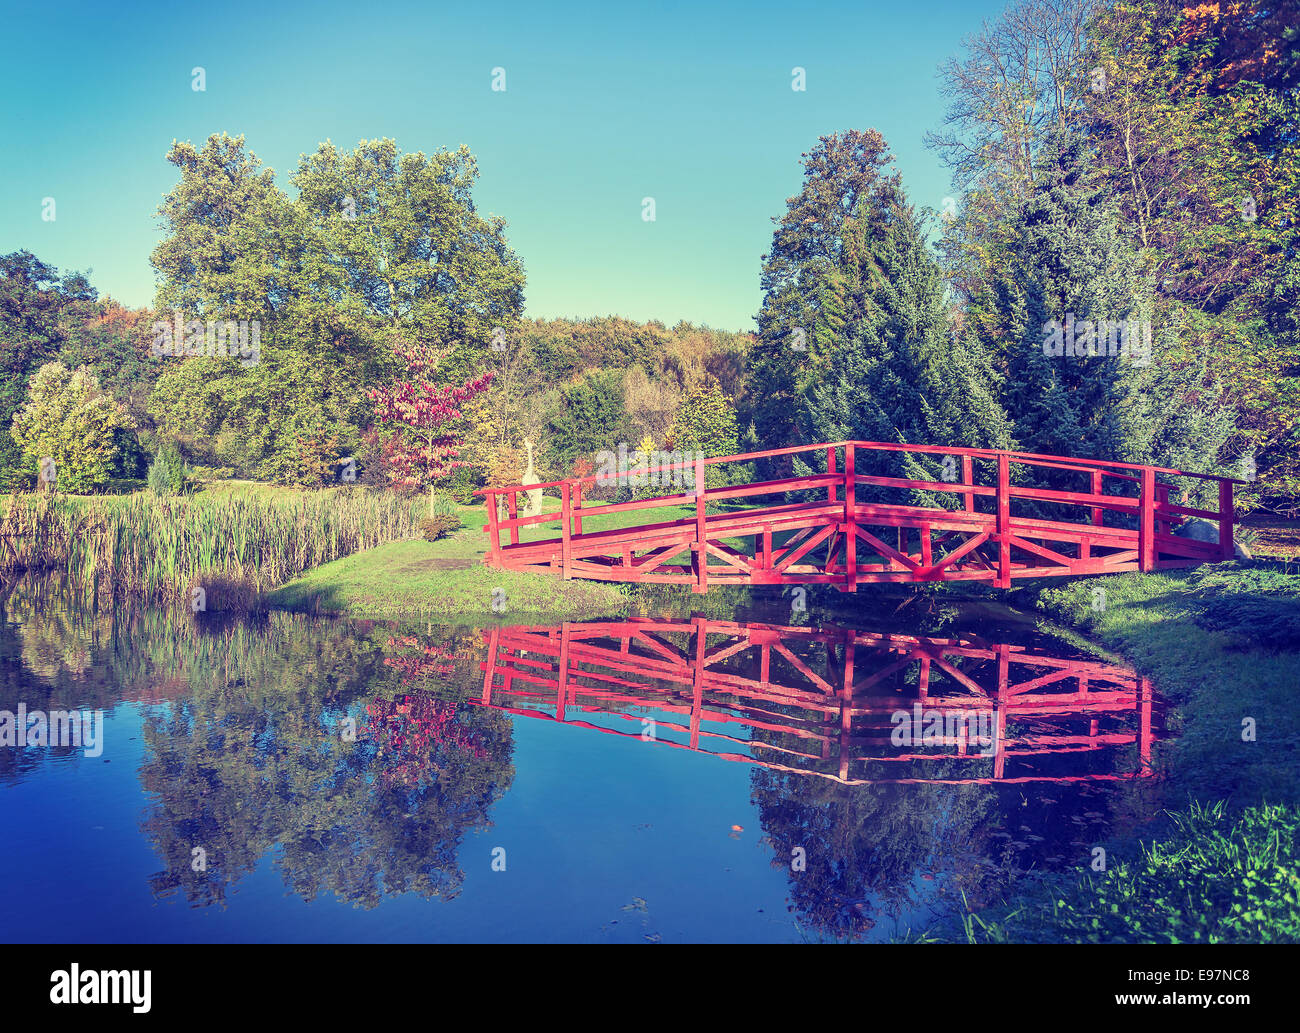 Vintage retro filtered picture of red bridge in garden. - Stock Image